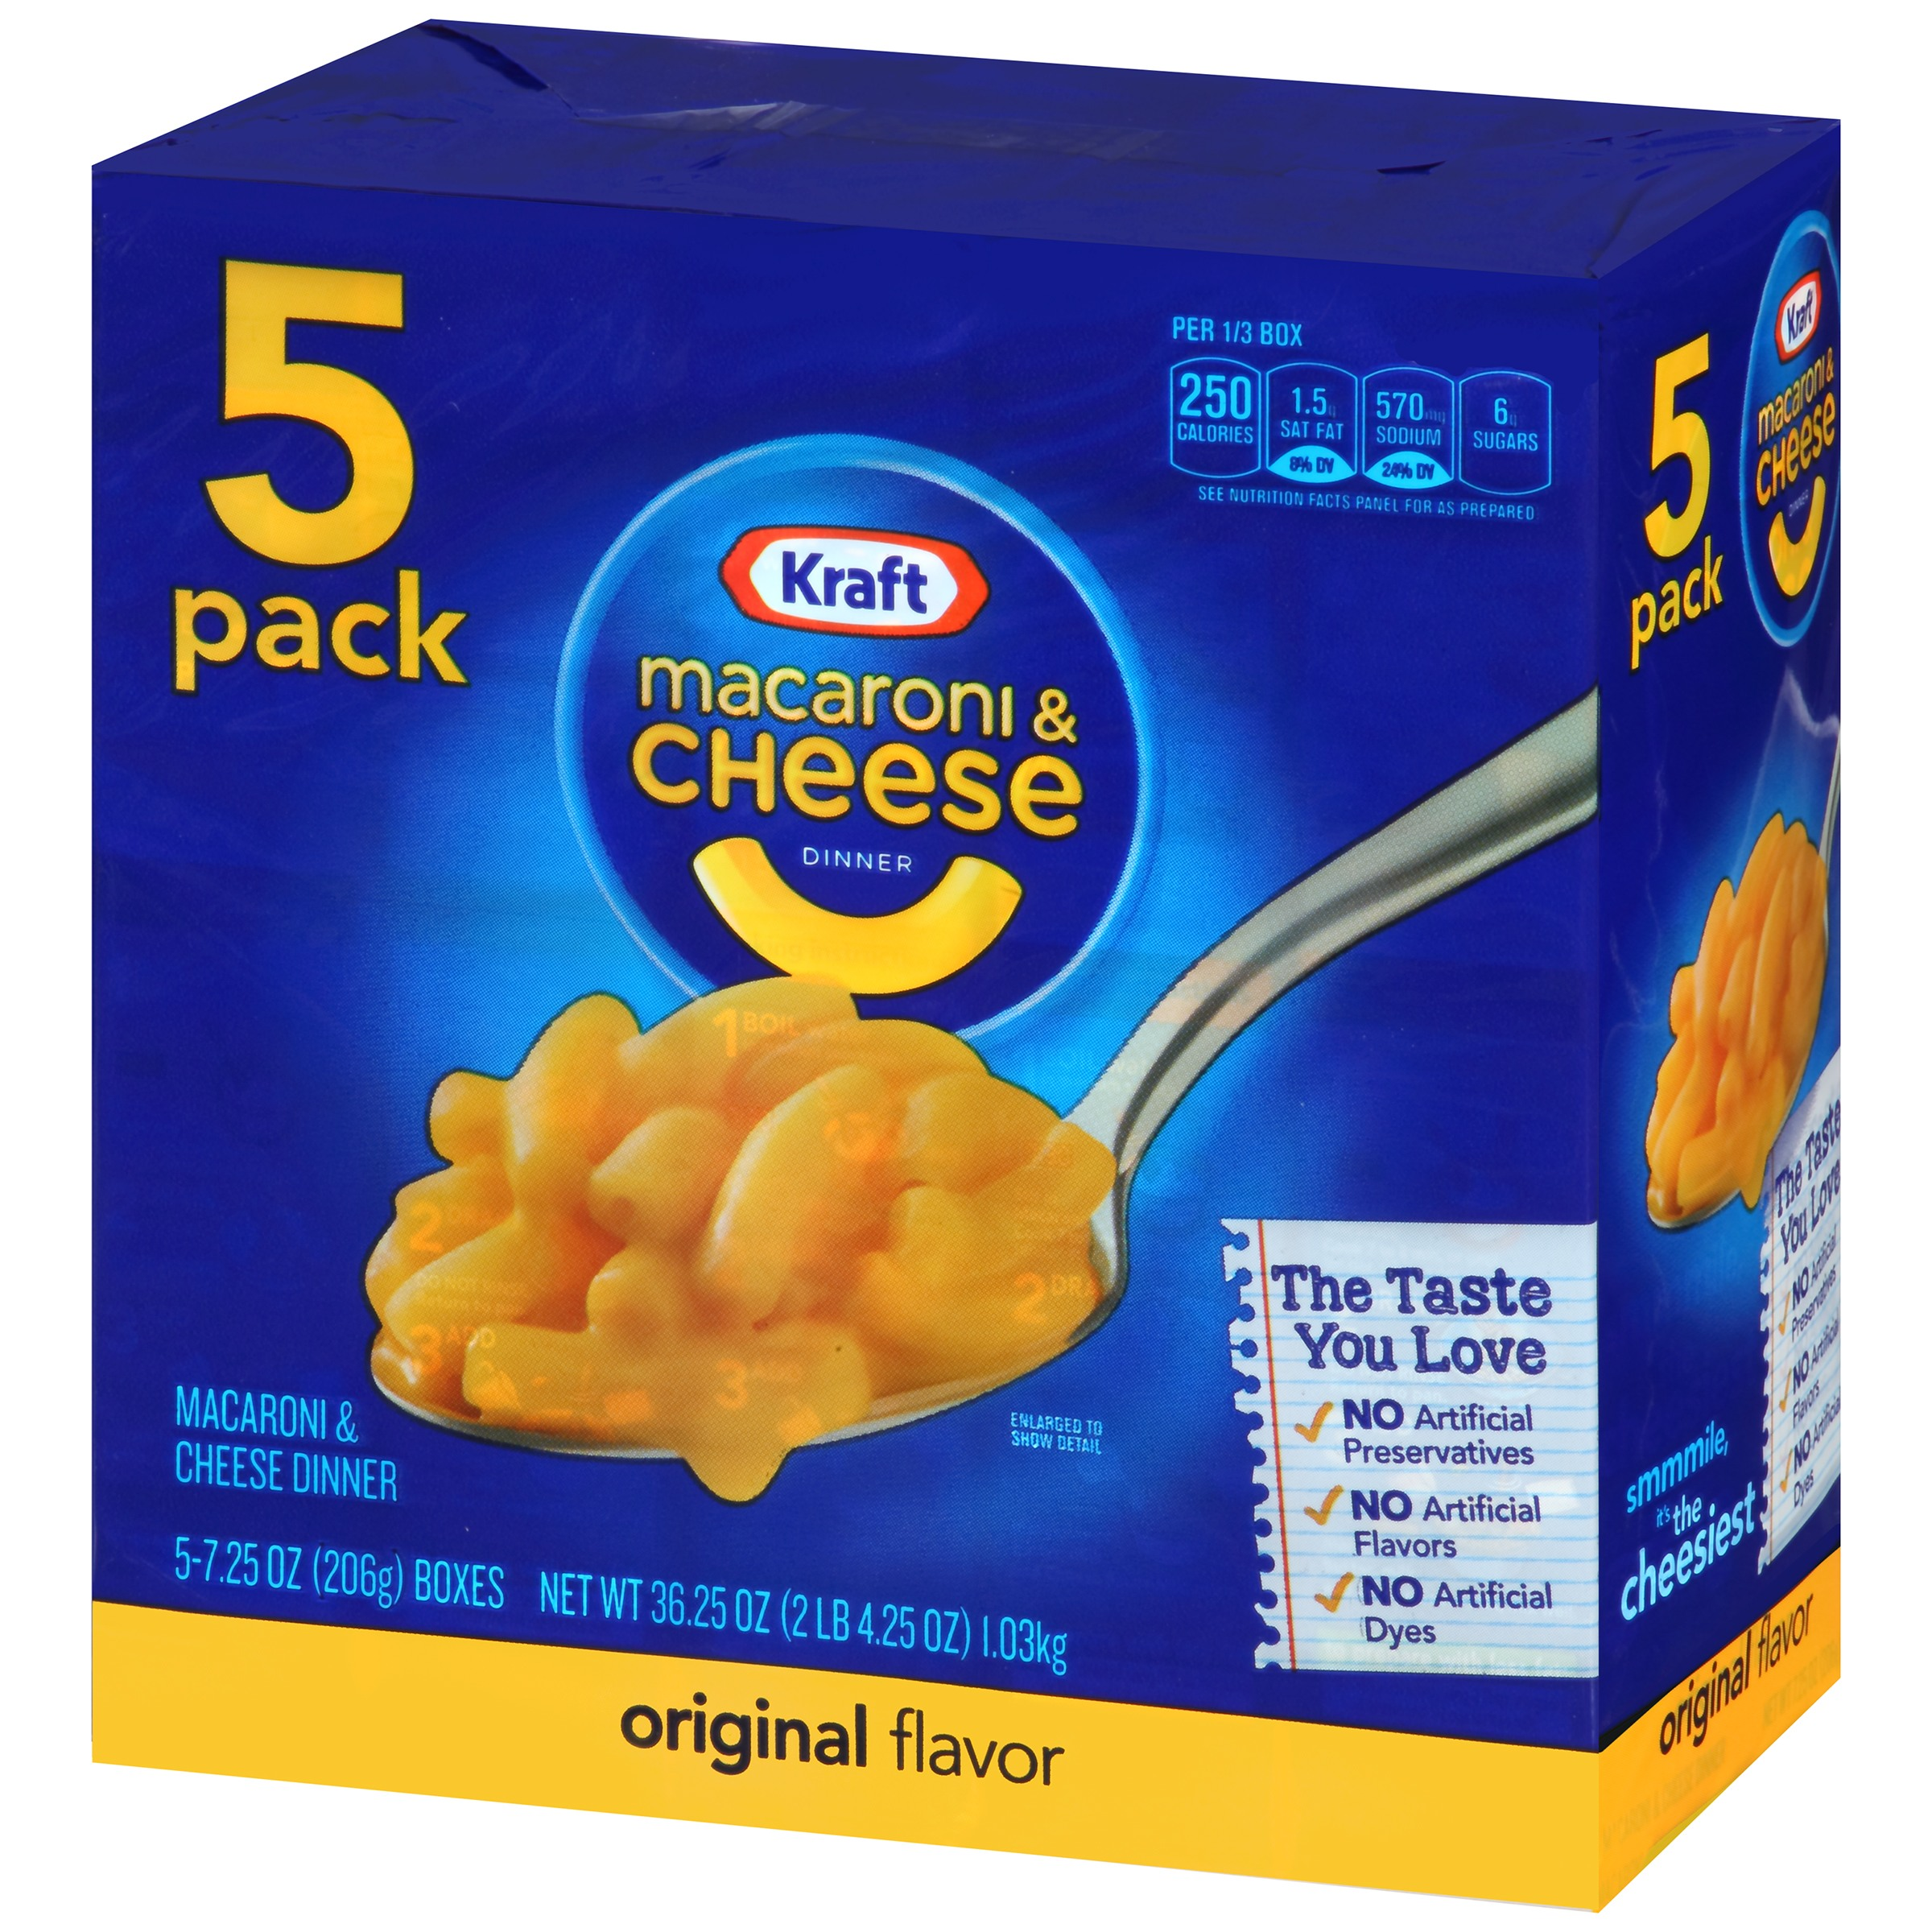 Watch 5 Best Boxed Mac Cheese Options on the Market video